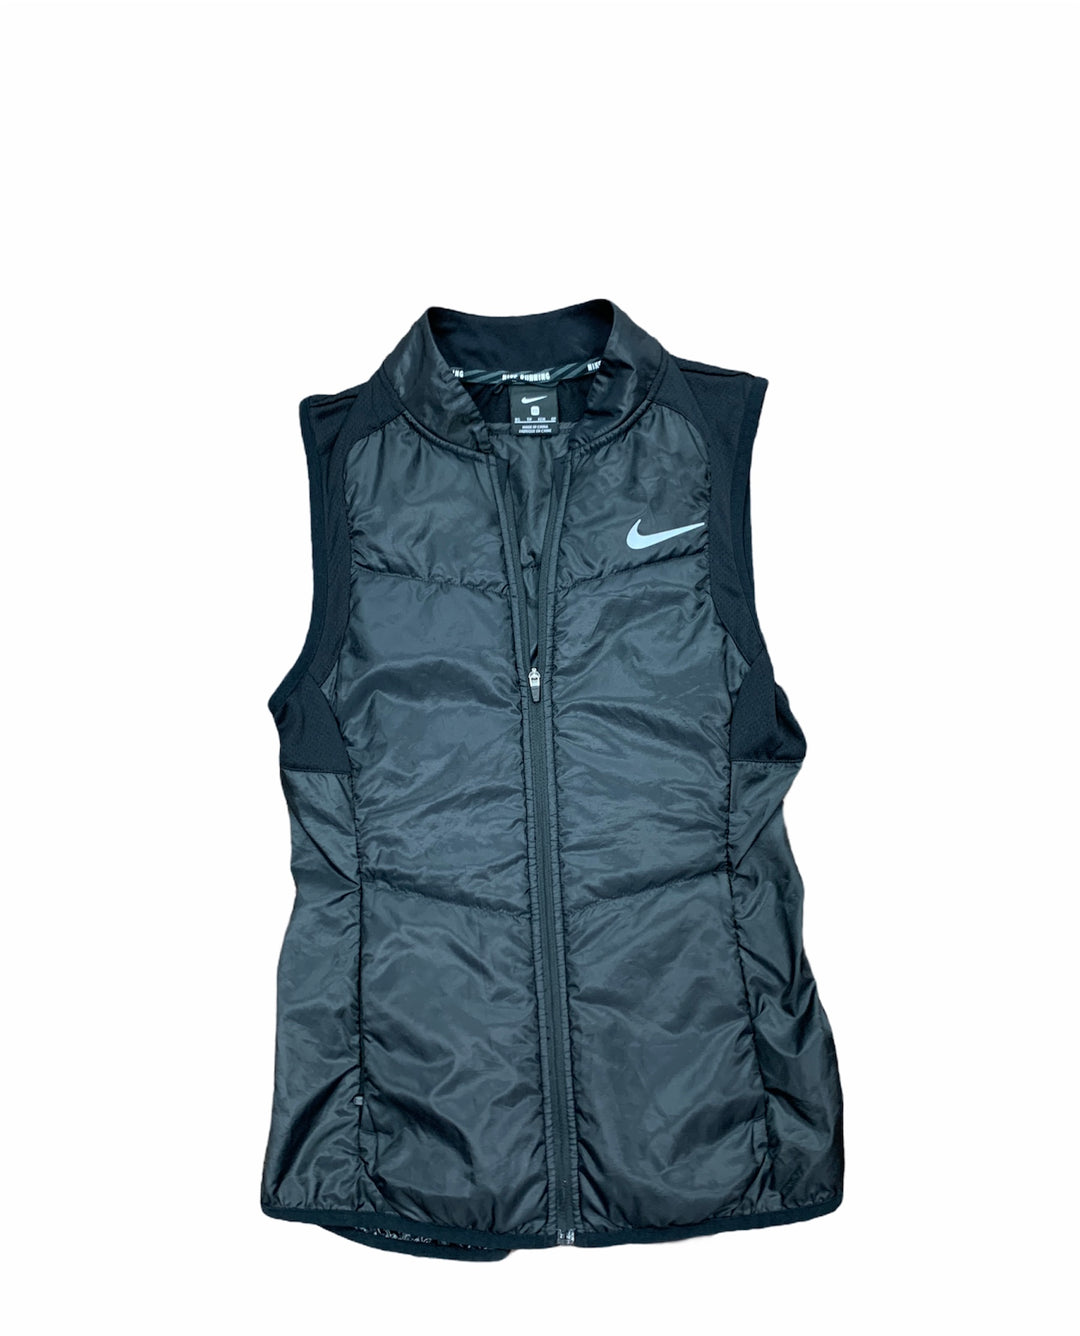 Primary Photo - BRAND: NIKE APPAREL <BR>STYLE: VEST <BR>COLOR: BLACK <BR>SIZE: XS <BR>SKU: 190-190125-35823